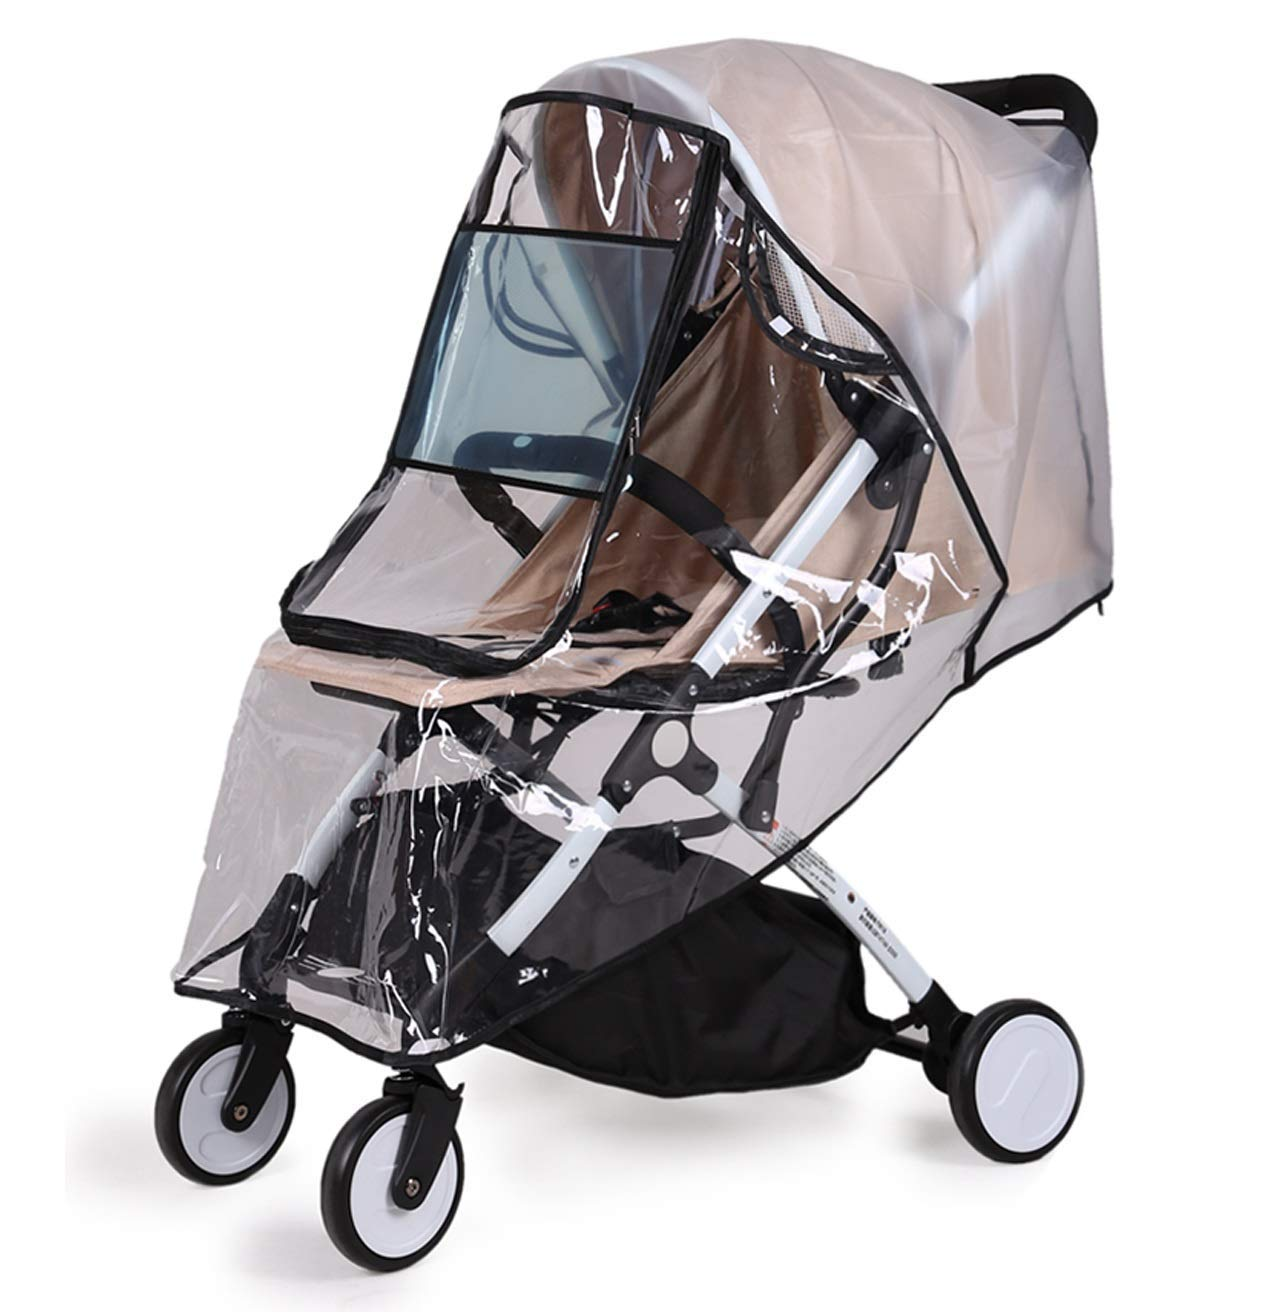 Diagtree Stroller Rain Cover Universal, Baby Travel Weather Shield, Windproof Waterproof, Protect from Dust Snow Insects (Black-M) by Diagtree